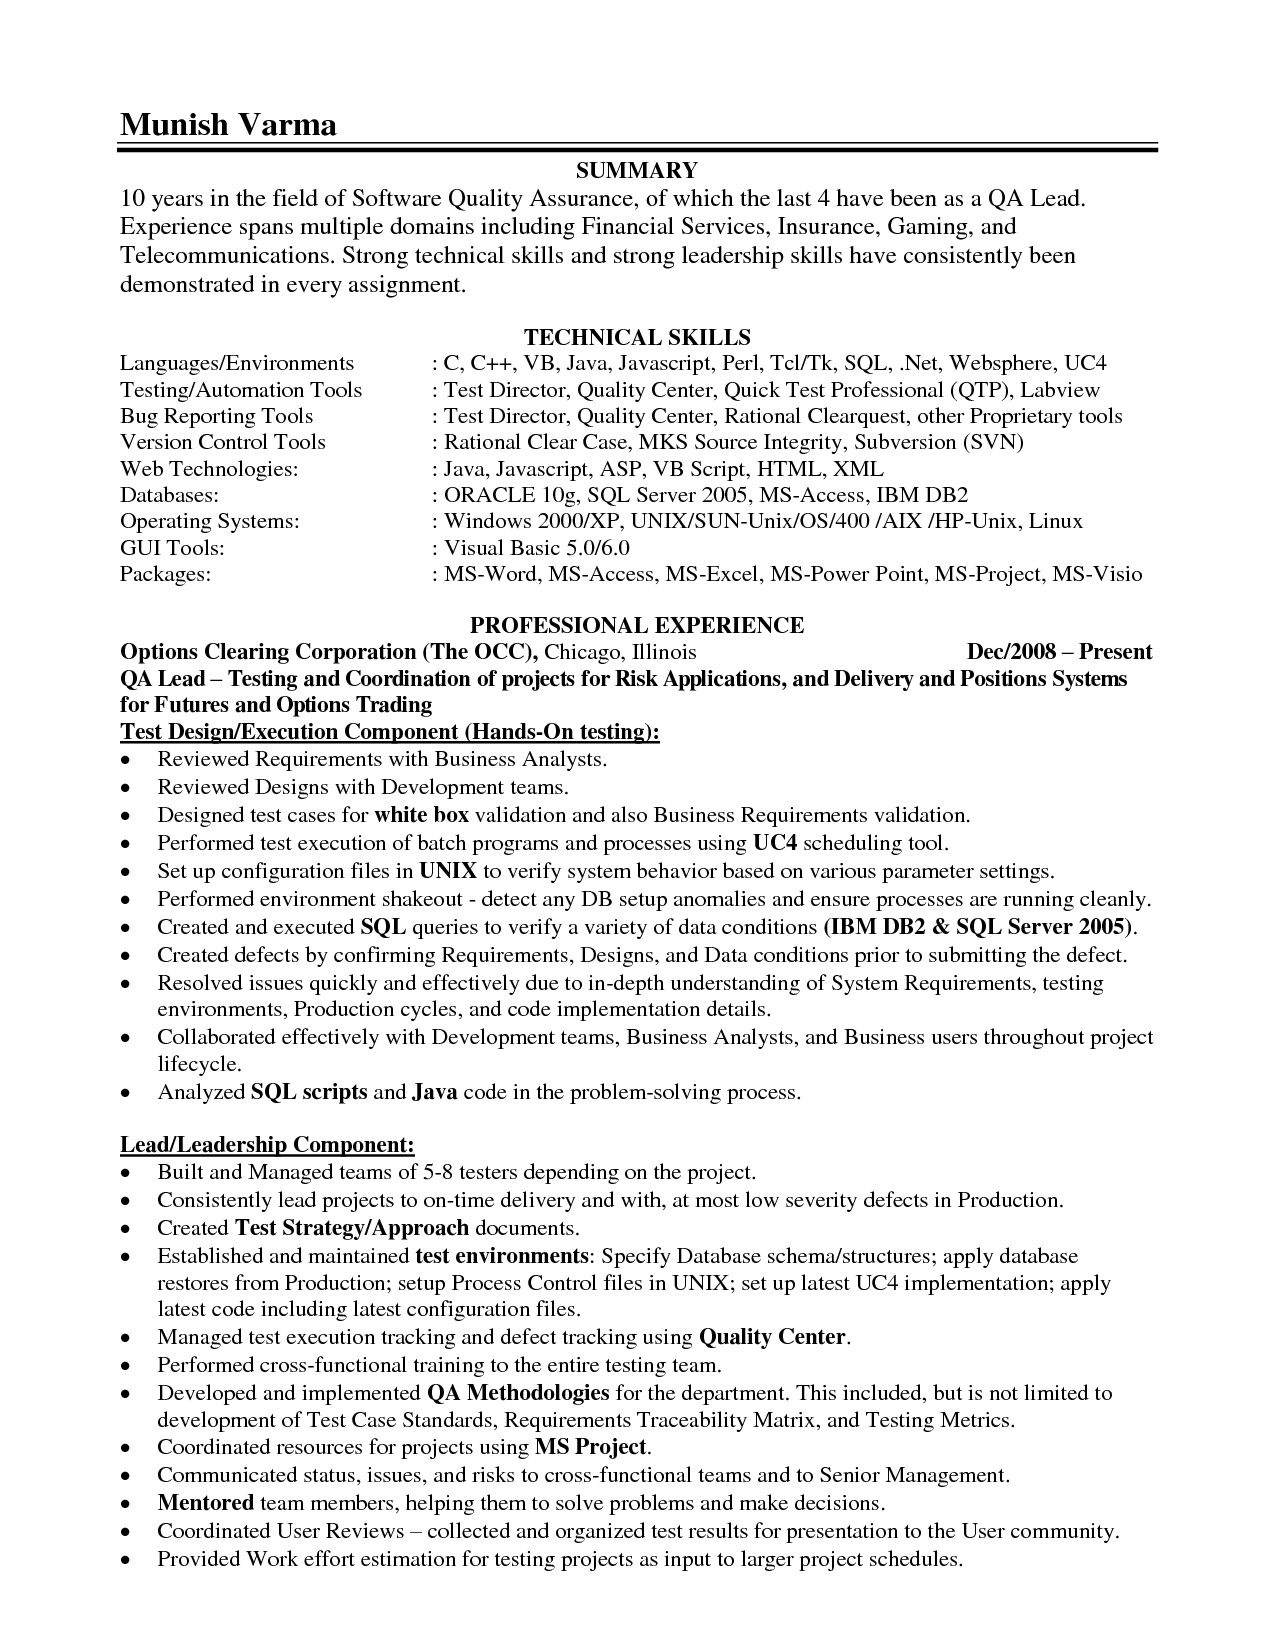 Resume Leadership Skills Examples 7 How To Describe Leadership Skills On Resume  Resume How To List .  Resume Skill Examples